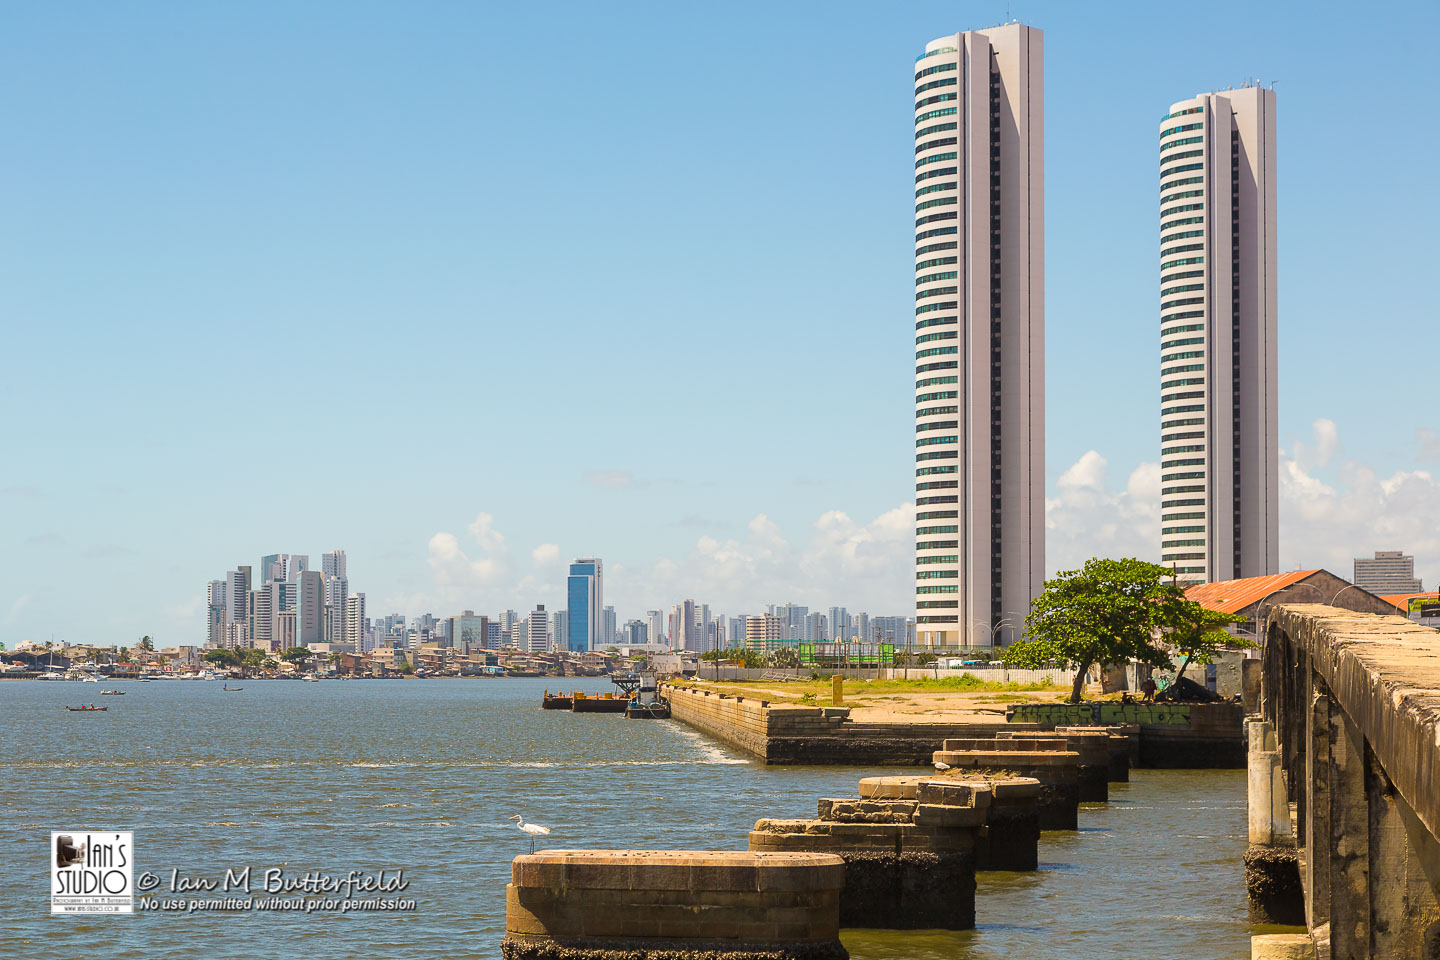 ACADEMY BITE: Lessons from the South America Cruise #20 – The skyline of Recife